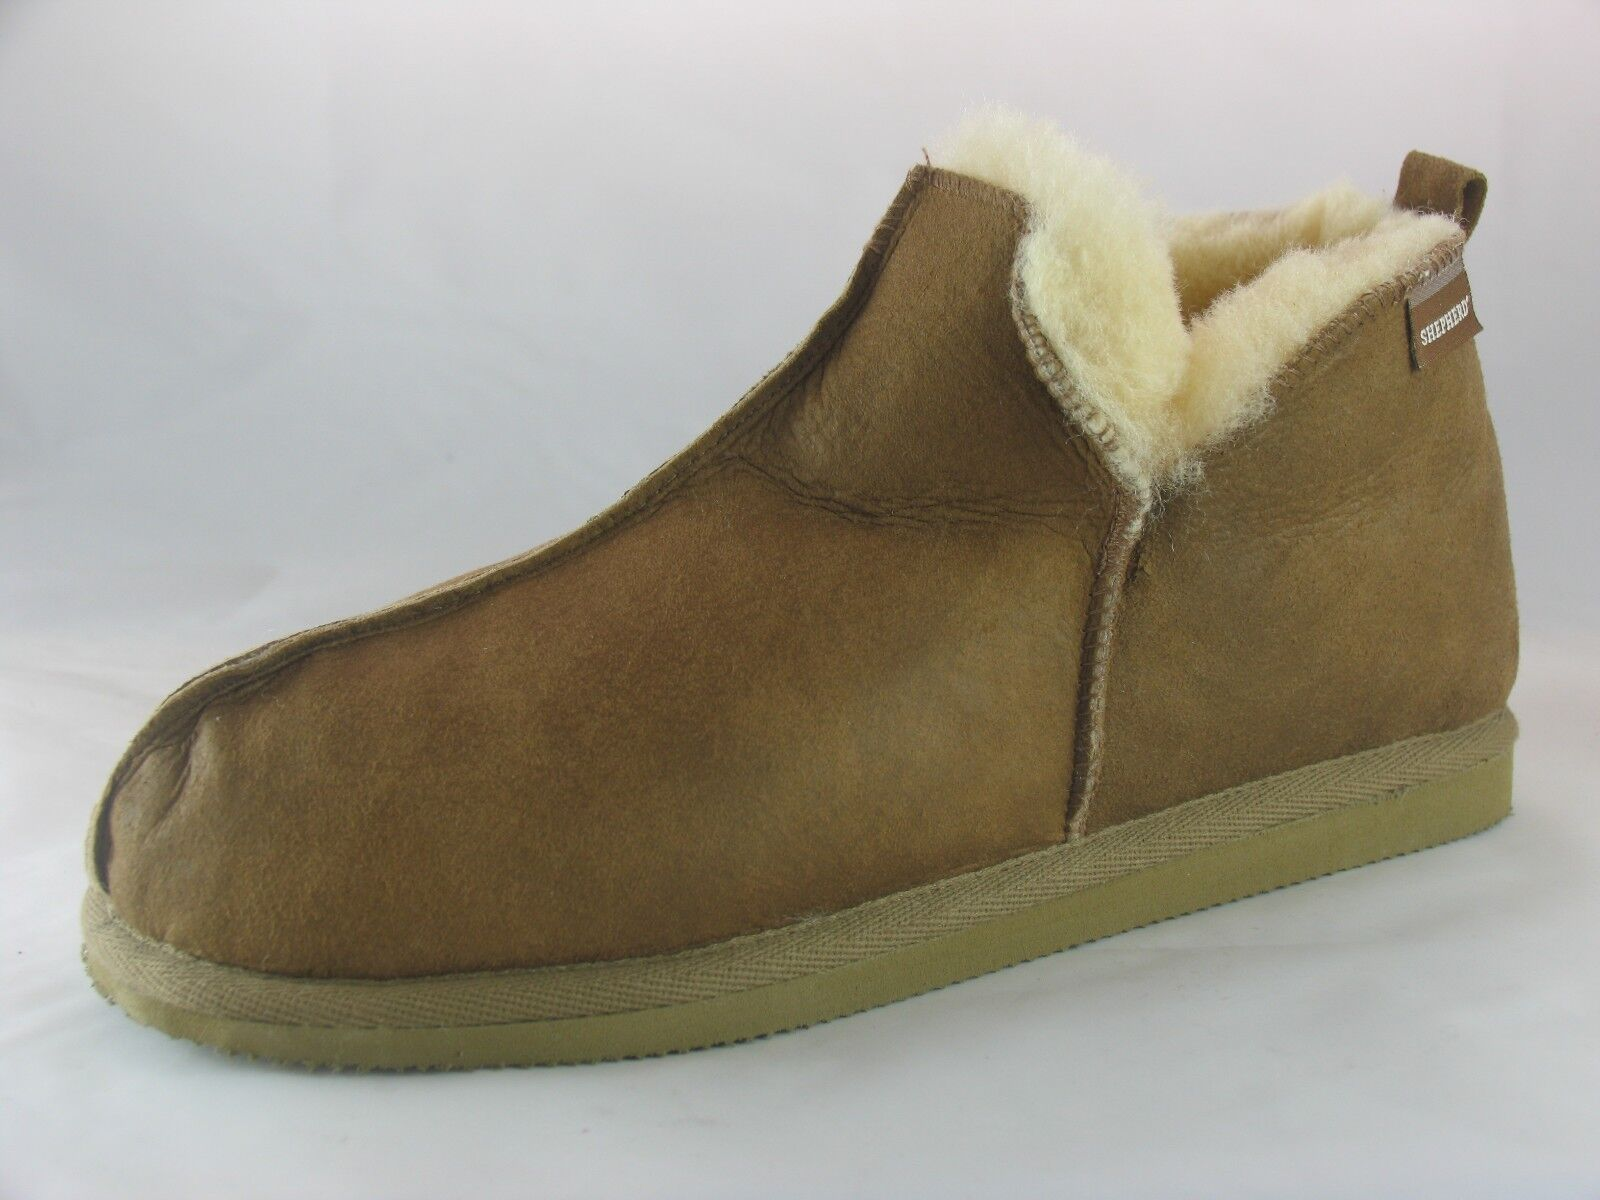 Men's Shepherd Anton Brown Sheepskin Full Slippers EU 41-47